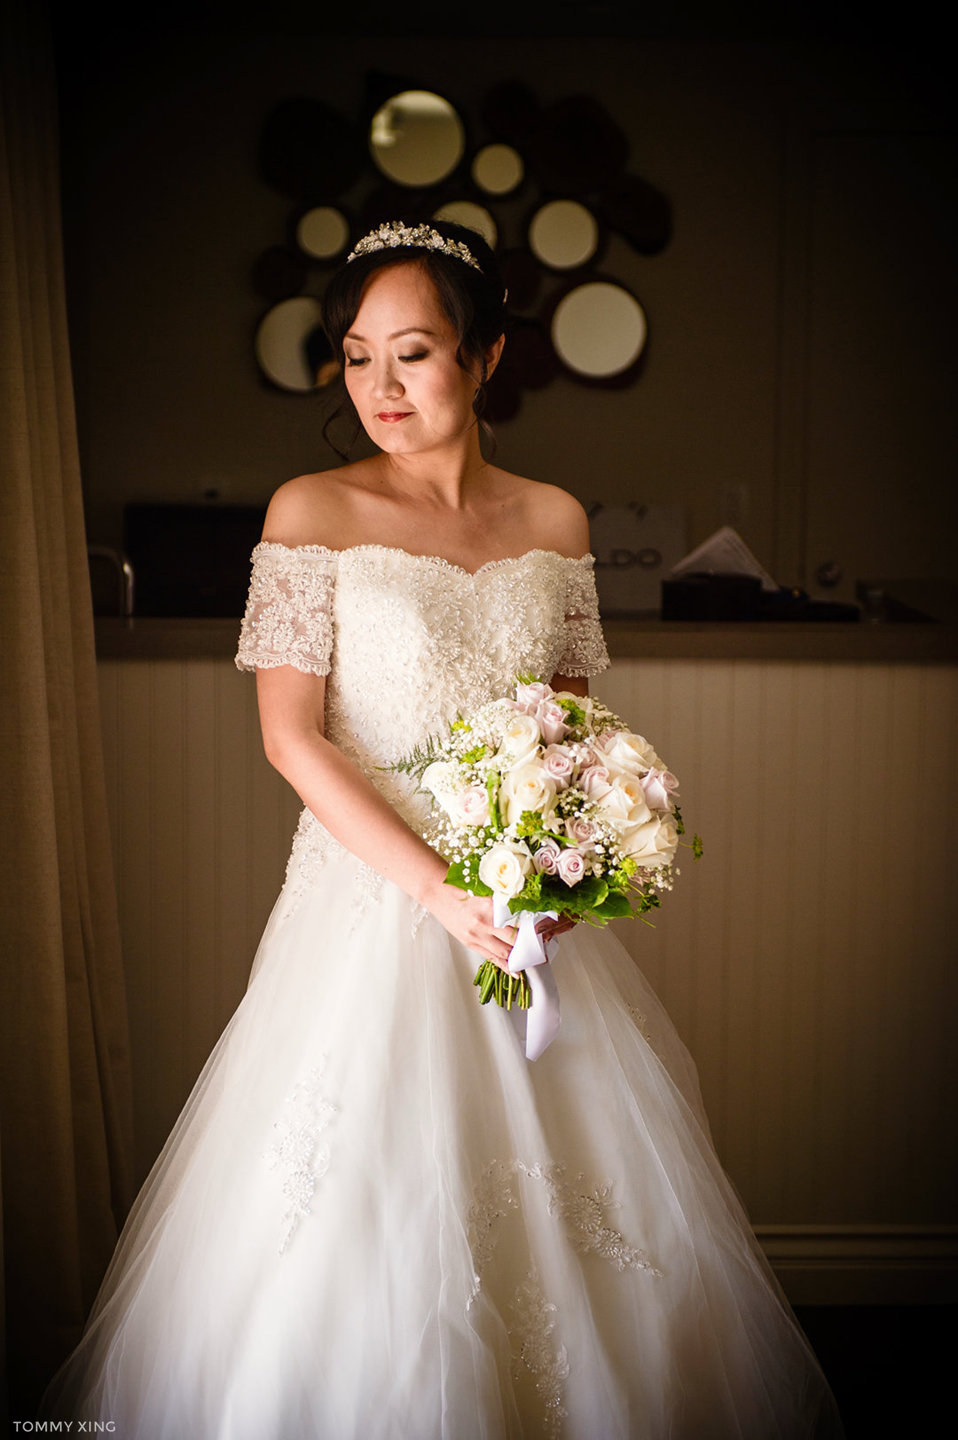 Paradise Point Resort Wedding Xiaolu & Bin San Diego 圣地亚哥婚礼摄影跟拍 Tommy Xing Photography 洛杉矶婚礼婚纱照摄影师 034.jpg